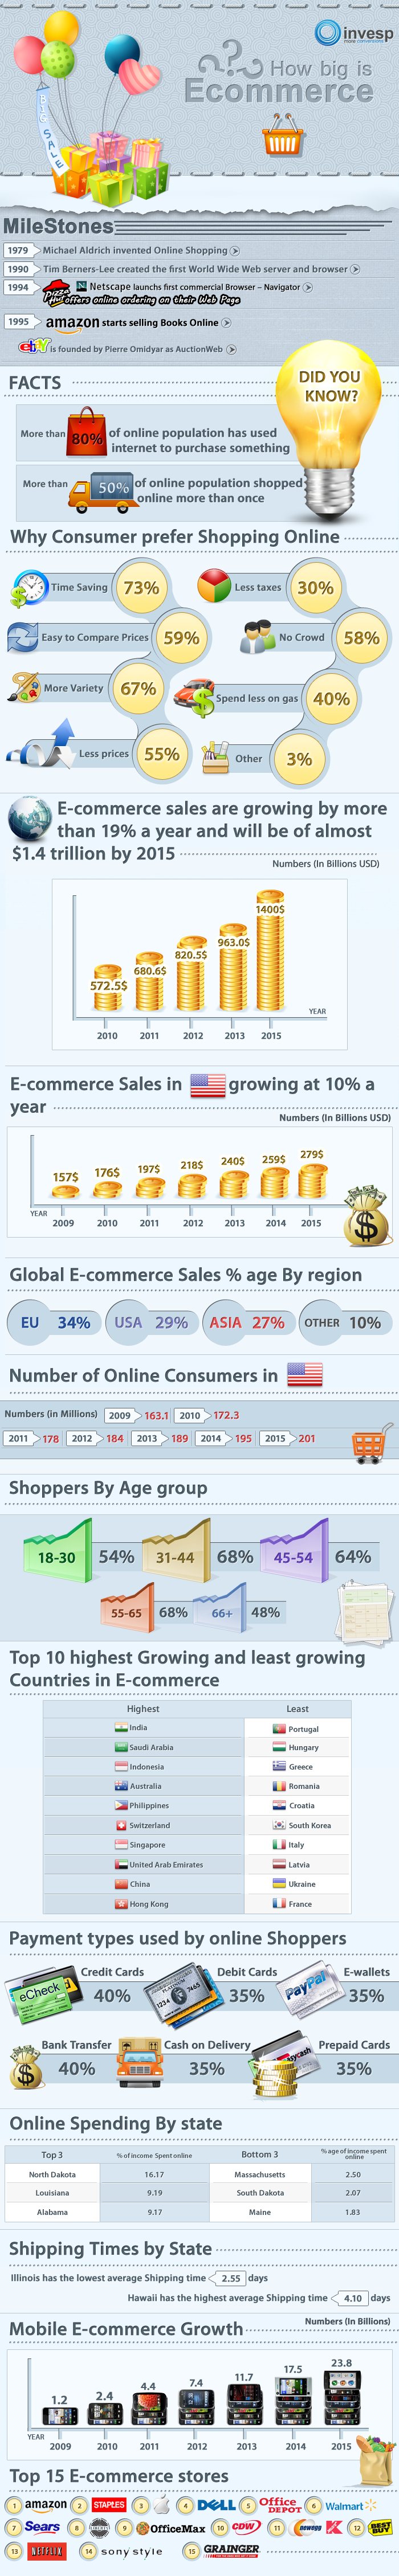 How-big-is-ecommerce-infographic